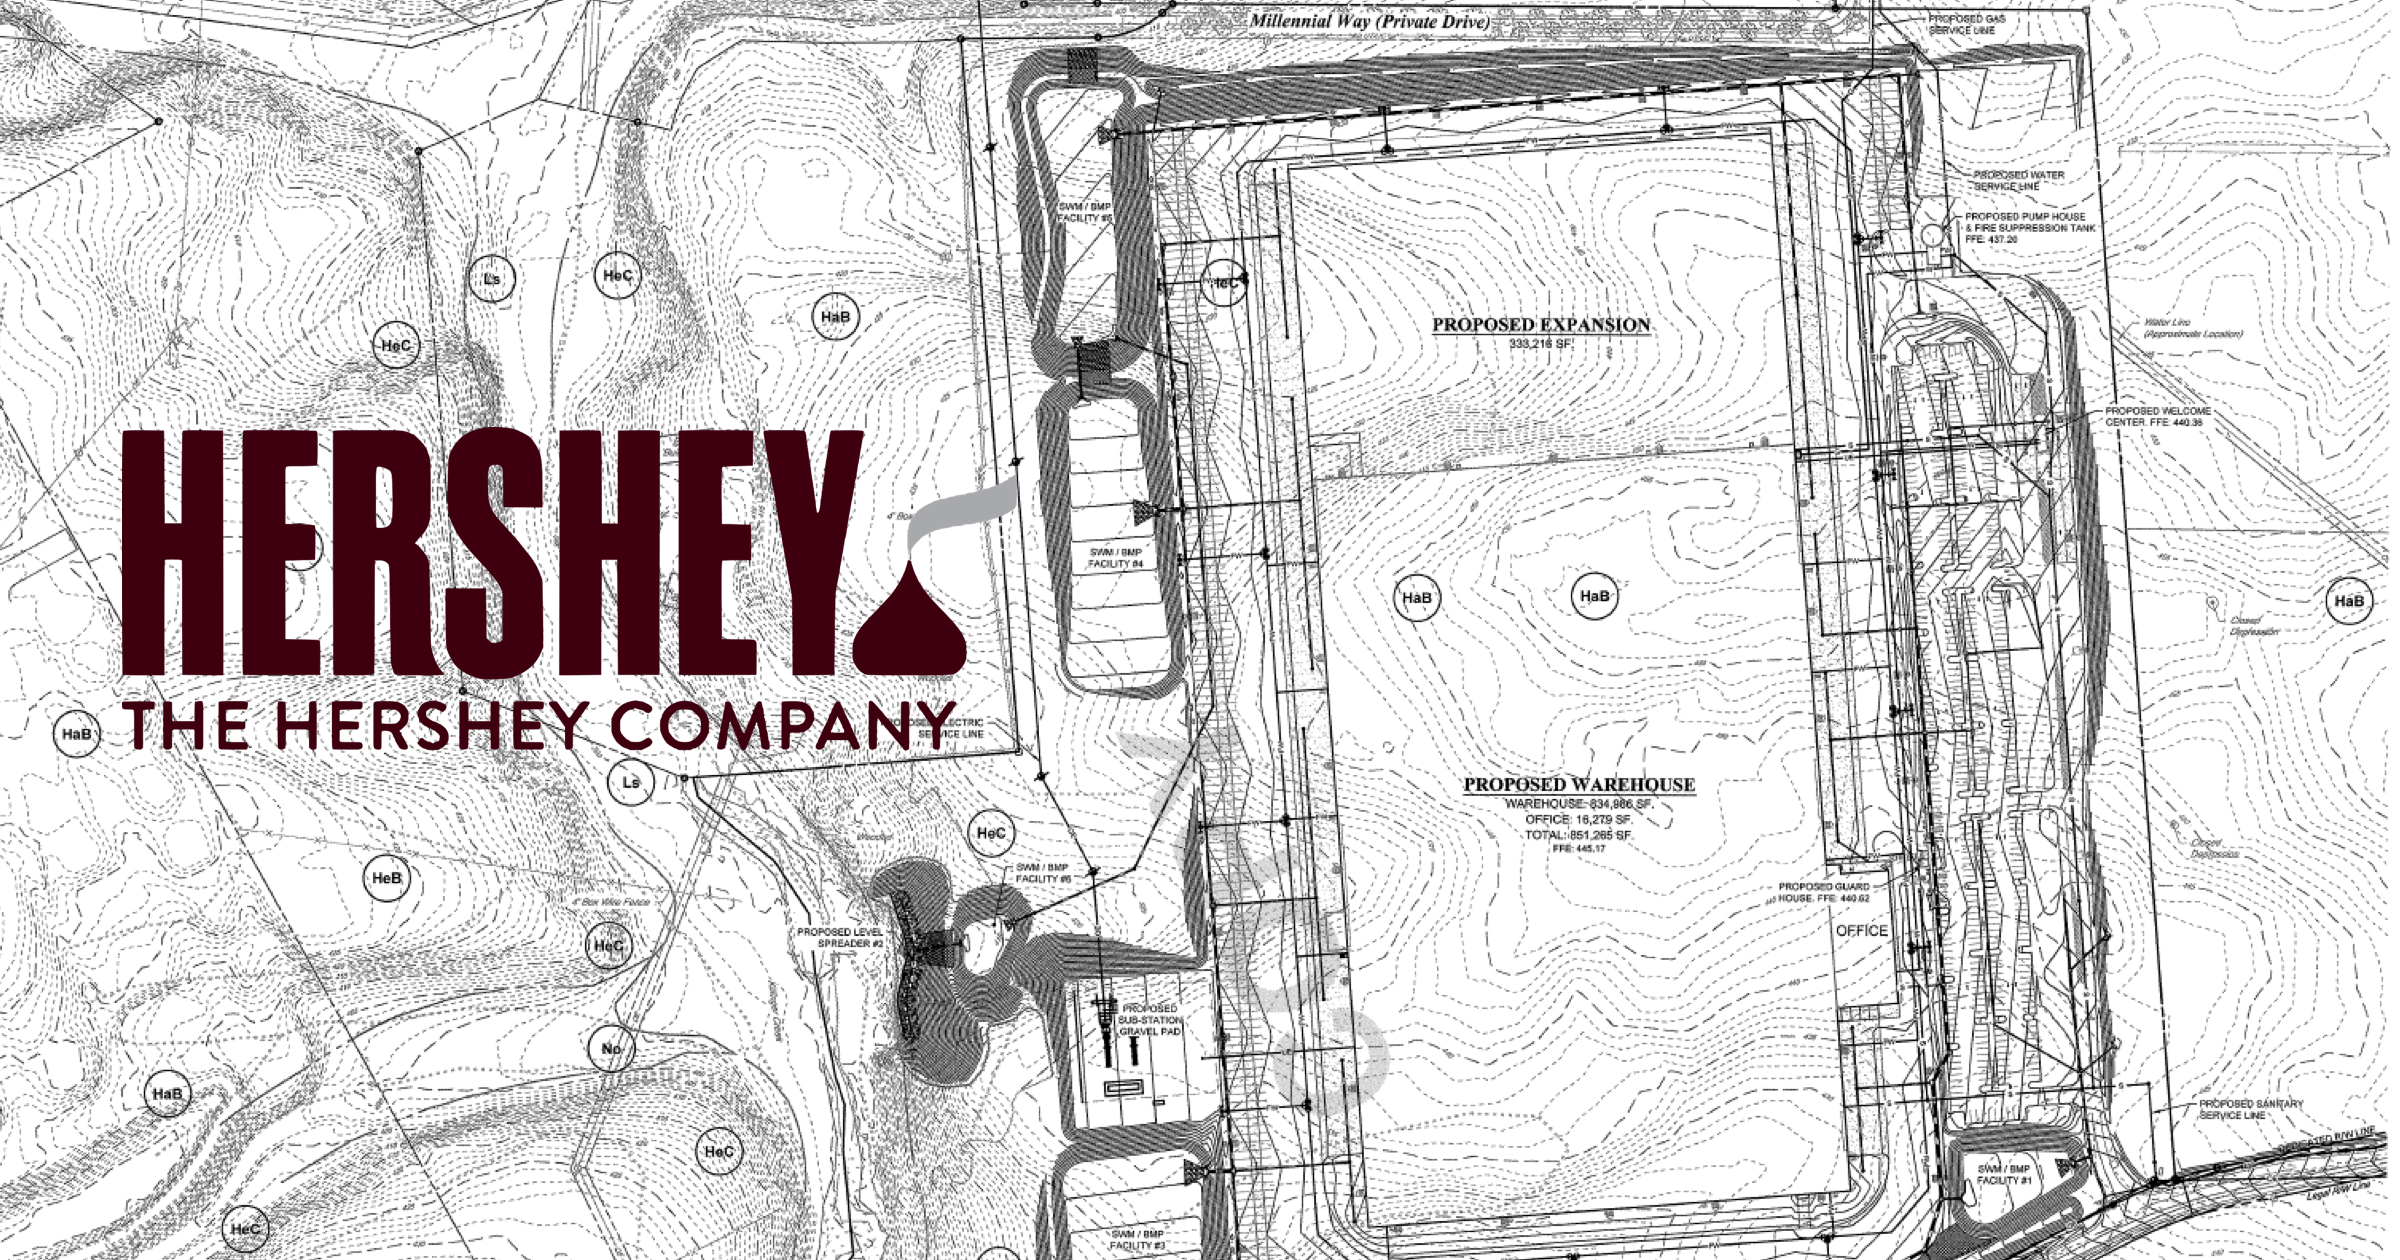 Hershey Co. plans million square foot South Annville Township warehouse